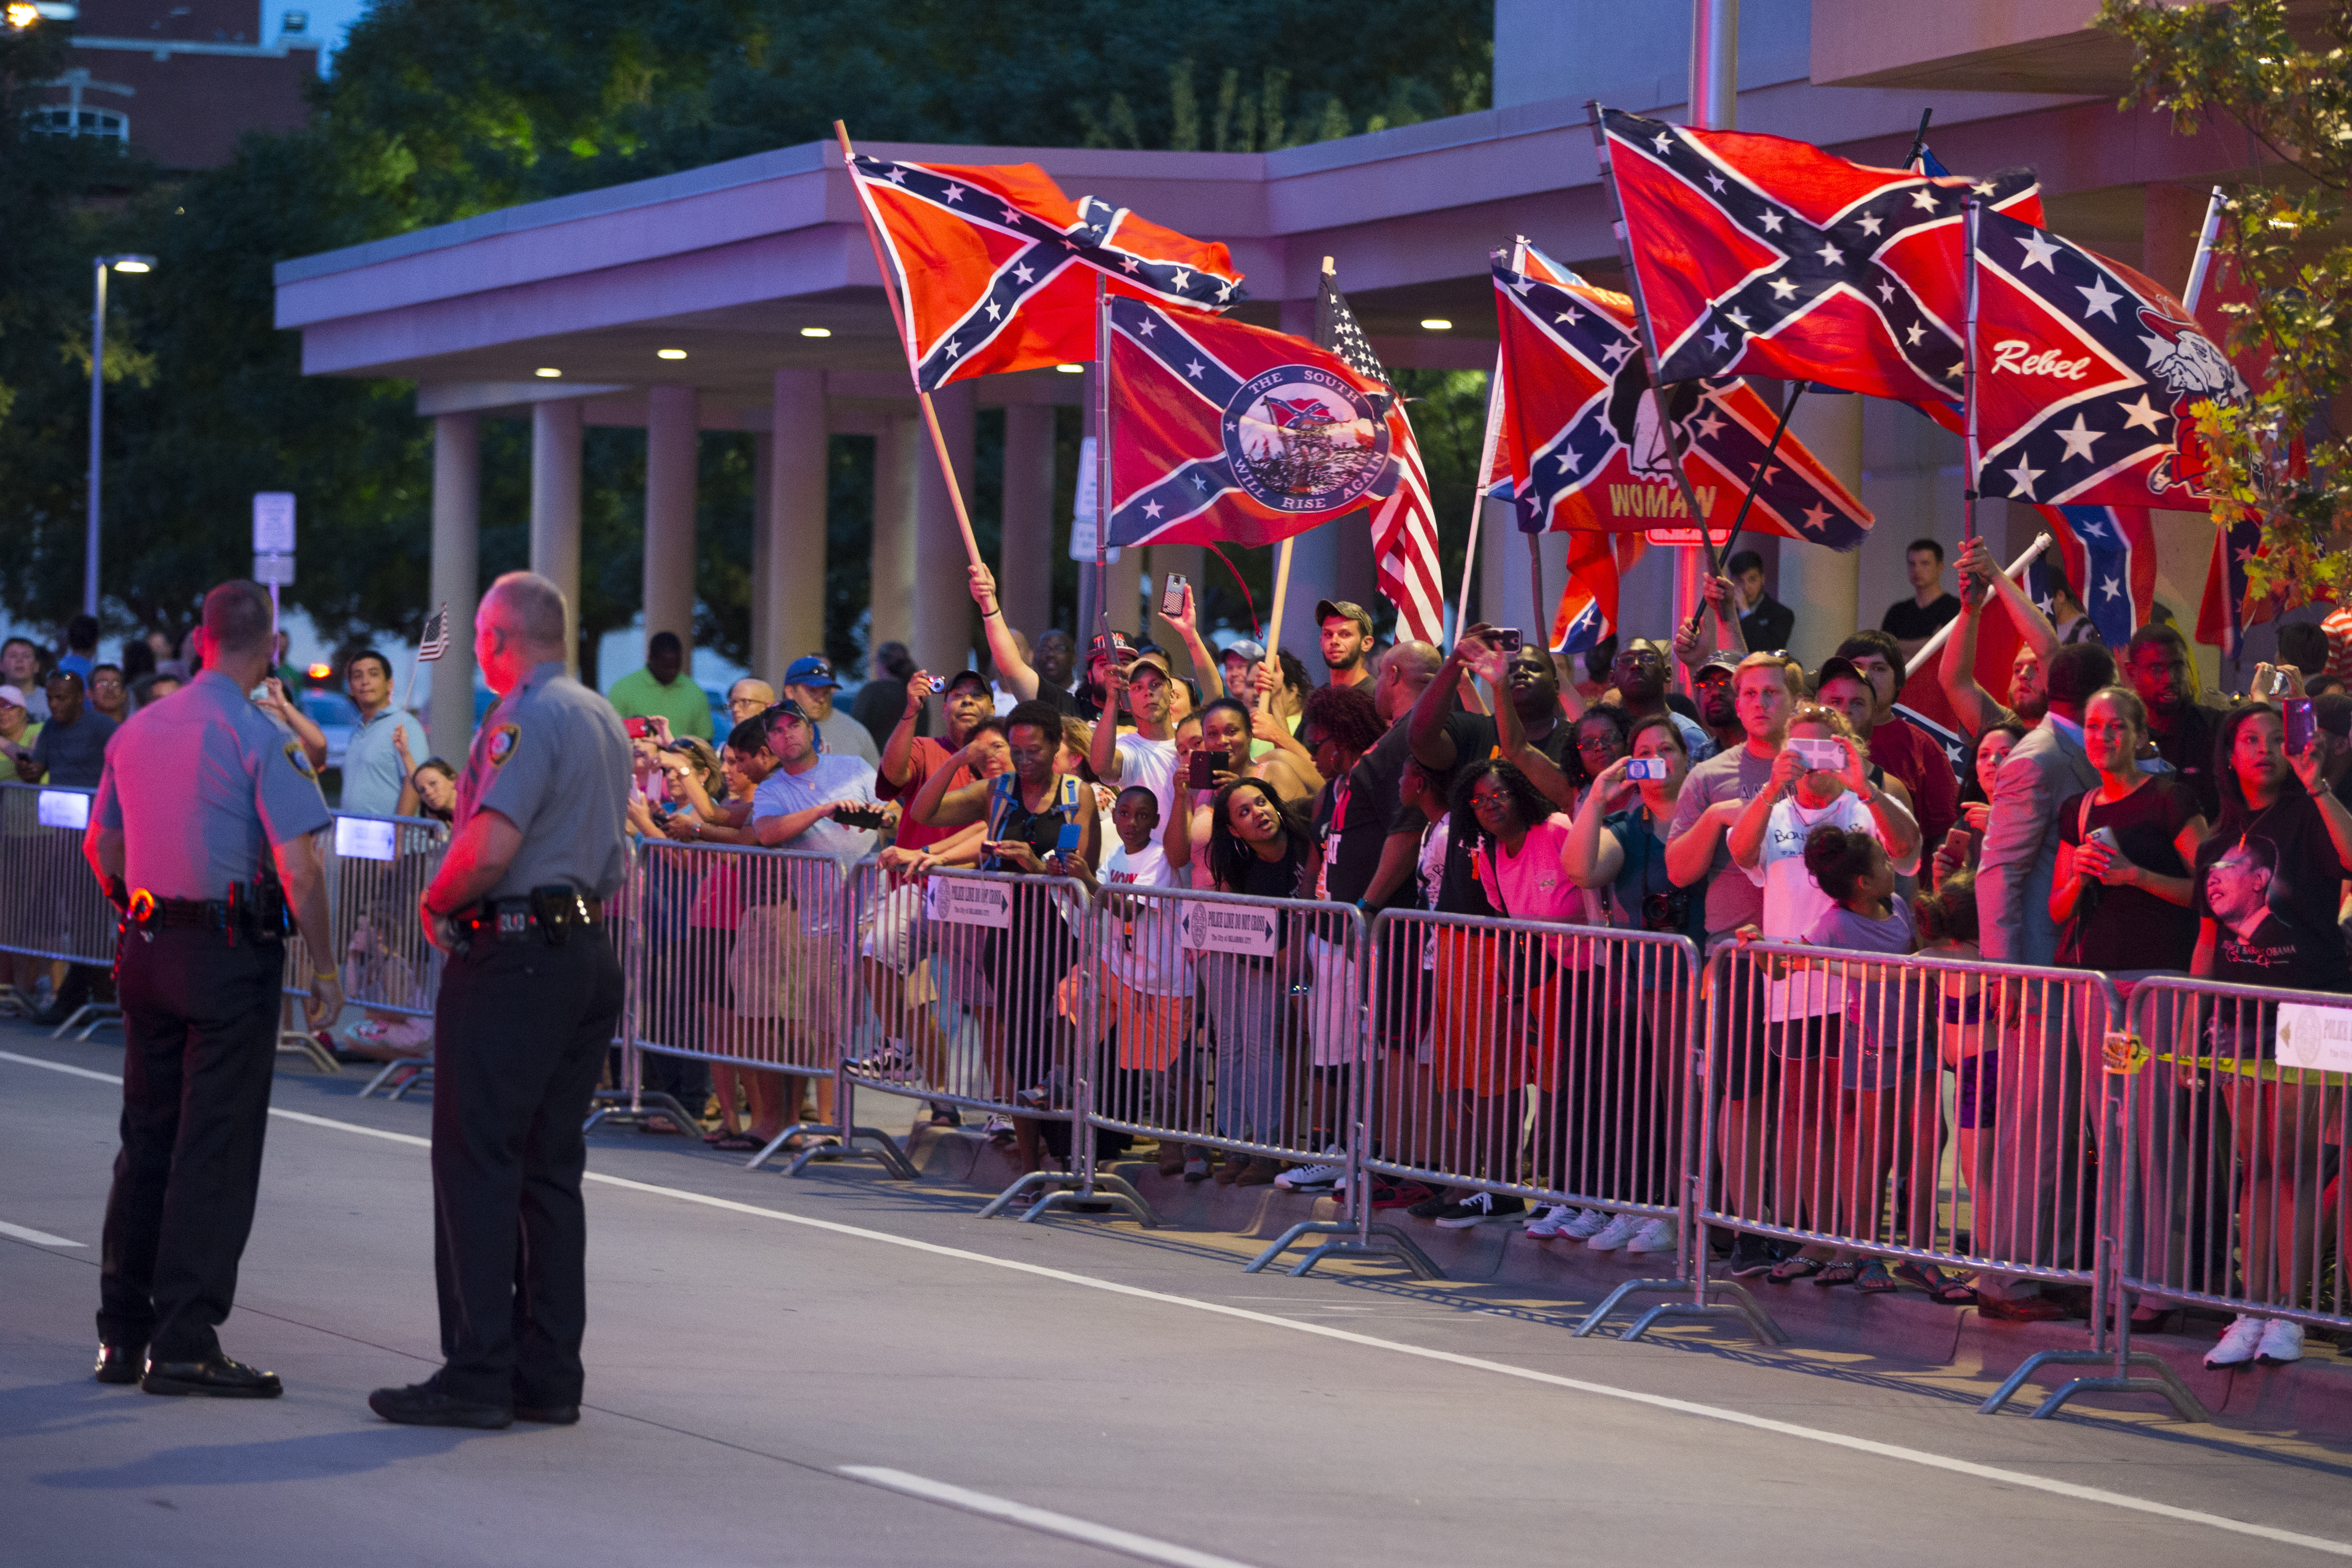 People wave Confederate flags outside the hotel where President Barack Obama is staying on July 15, 2015, in Oklahoma City.